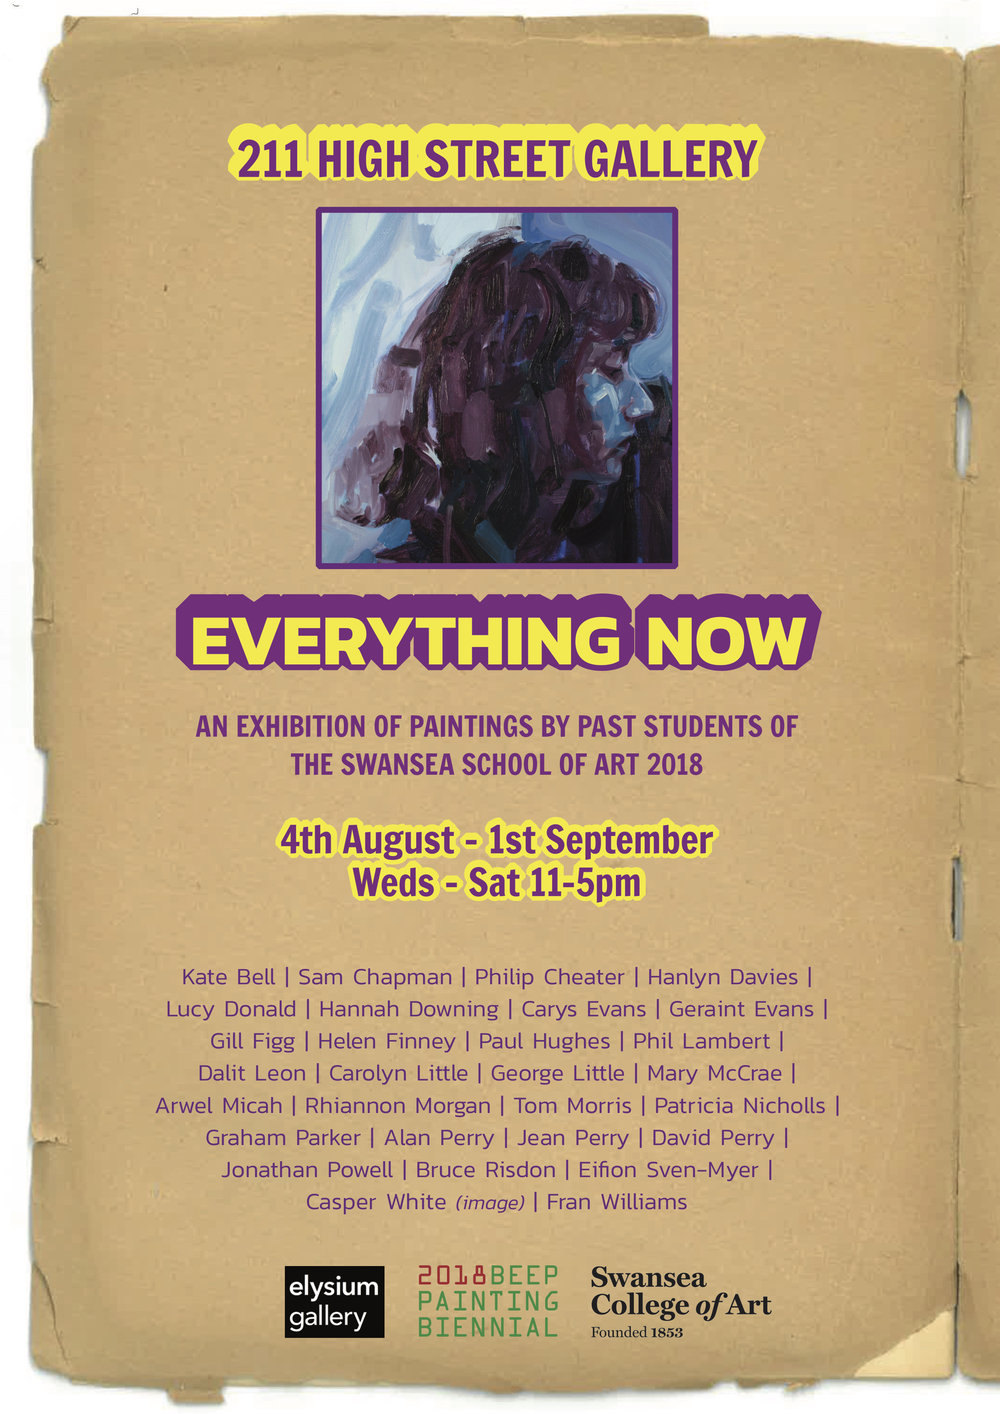 August 2018: Everything Now - http://www.elysiumgallery.com/events/event/everything-now/